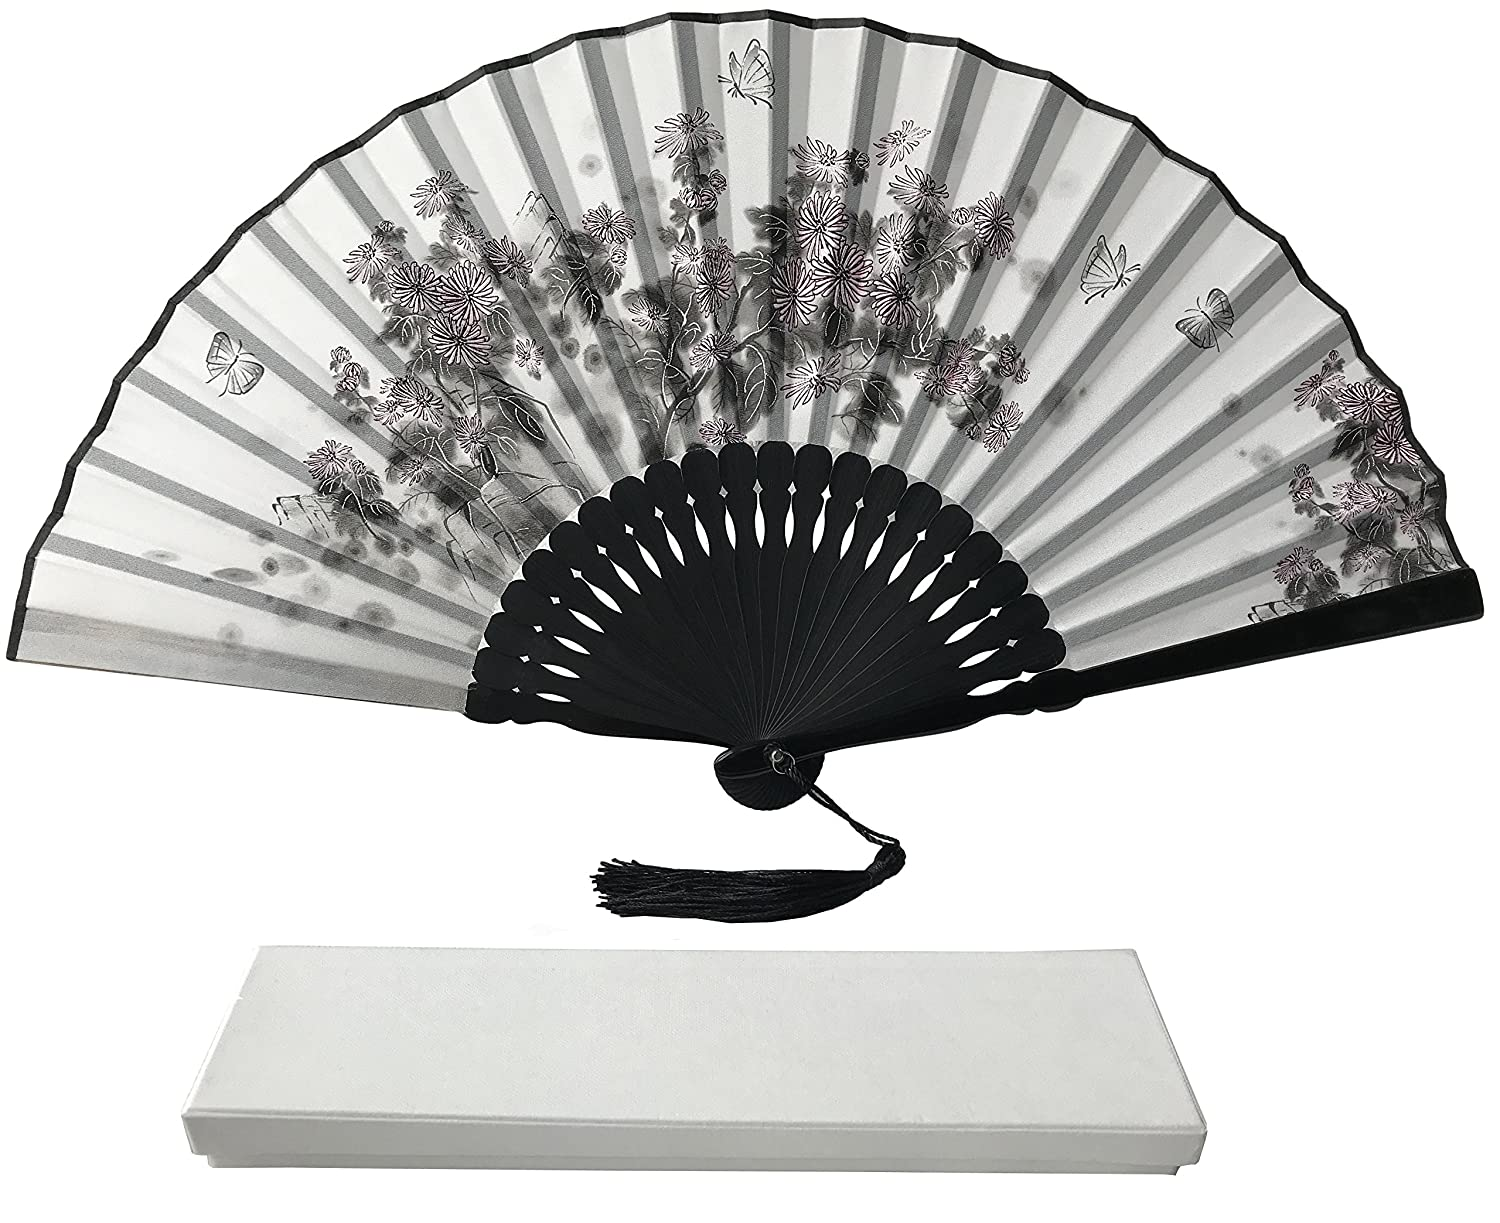 Ink Art Handheld Fan with a Box and a Pouch for Women Men Girls Black and White with Silver Touch UP Durable Folding Top Grade Bamboo Ribs Satin Fabric Ink Hand Fan (Dragonflies IA03) Rangebow